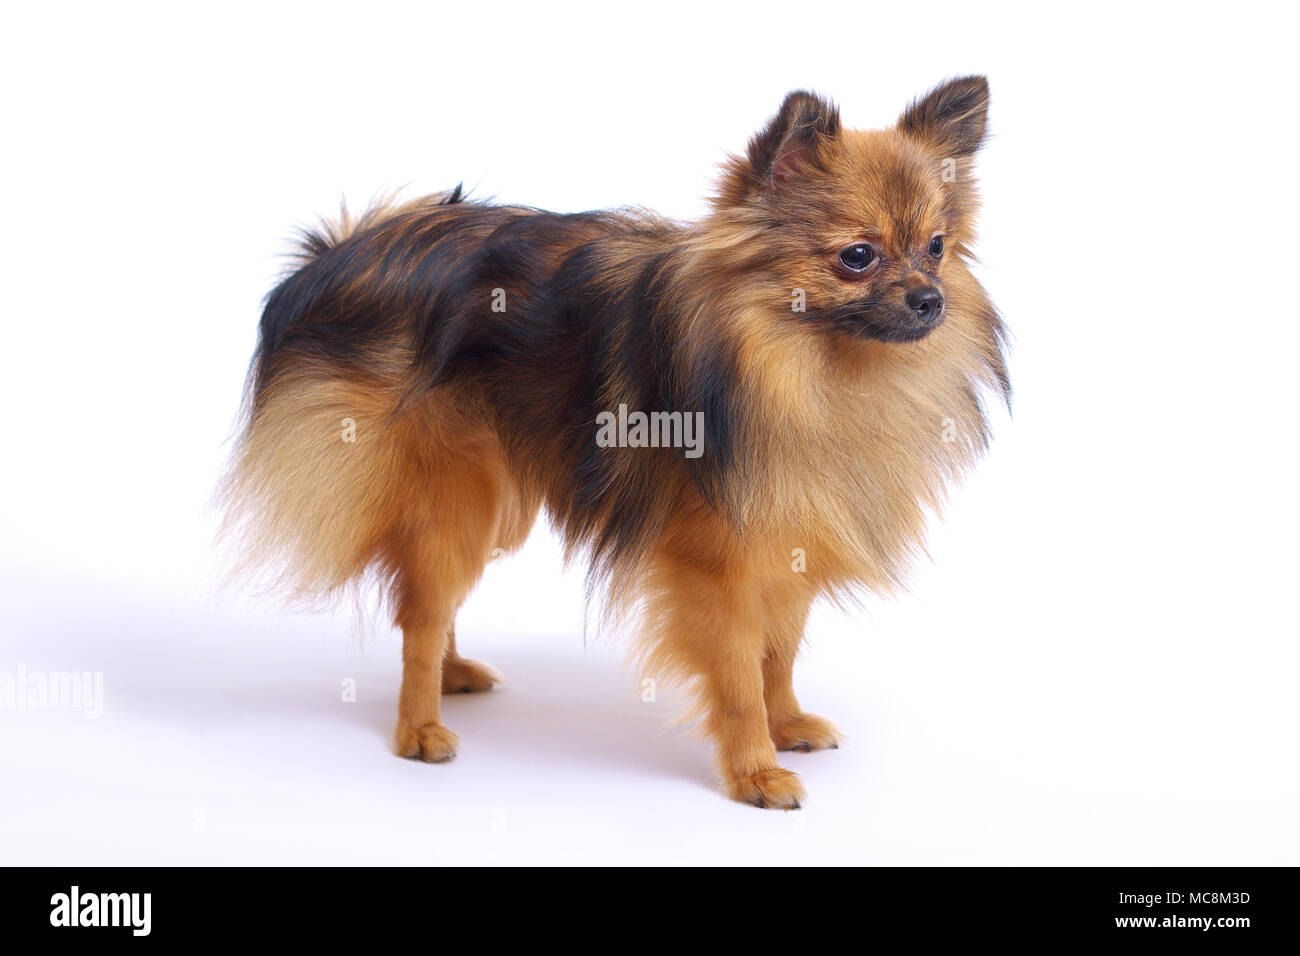 A Small Pomeranian Dog Stands In Profile On A White Background Stock